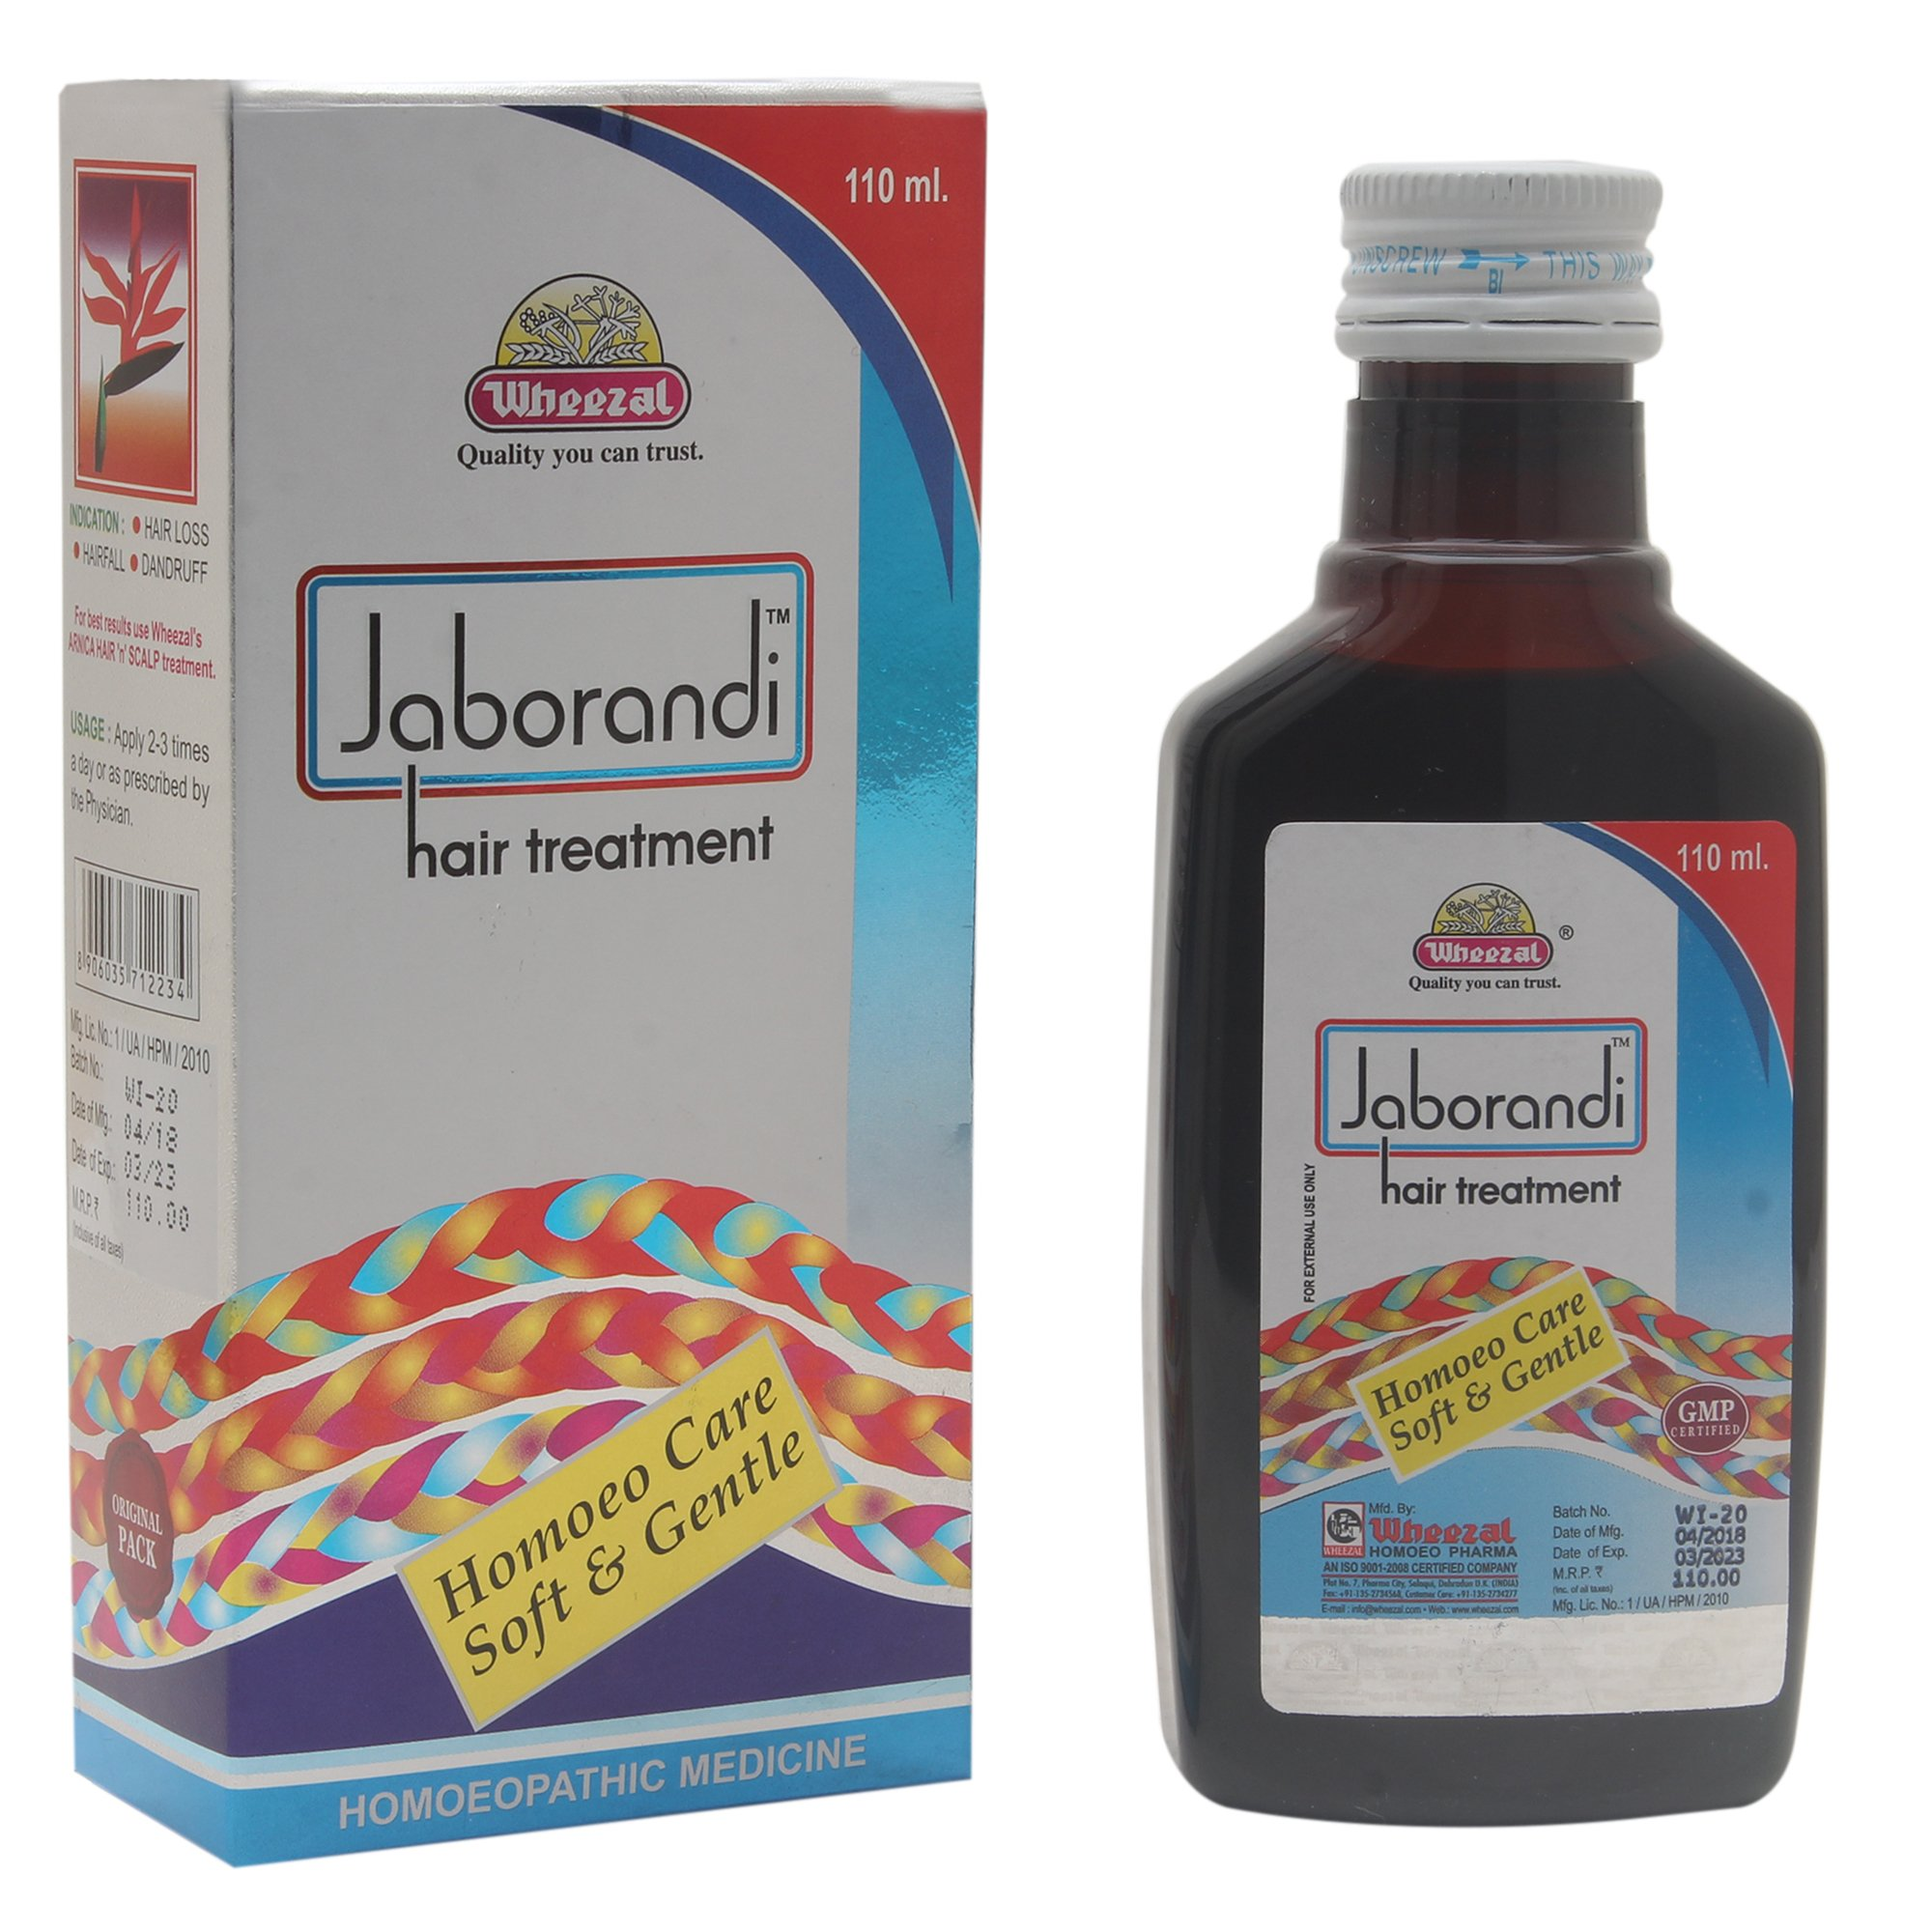 WHEEZAL JABORANDI HAIR TREATMENT OIL 110 ML